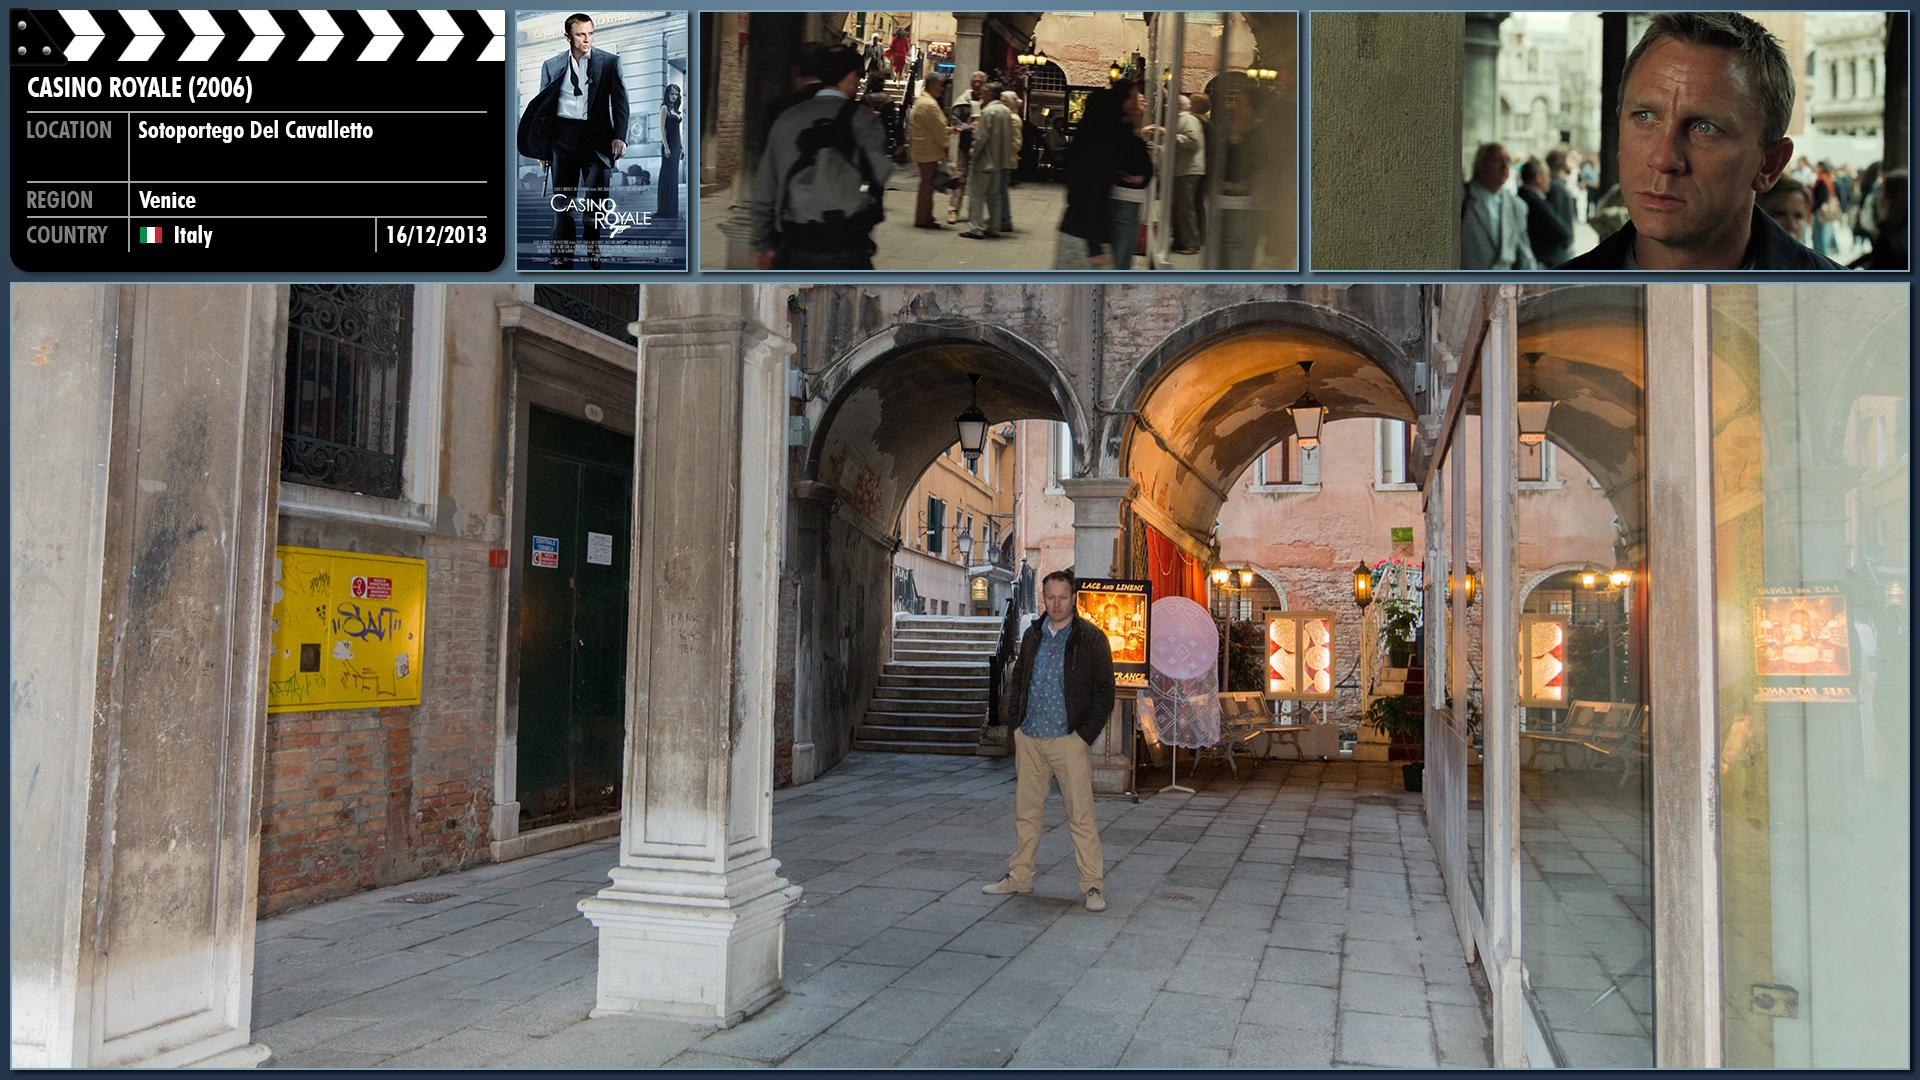 Filming location photo for Casino Royale (2006) 3 of 6